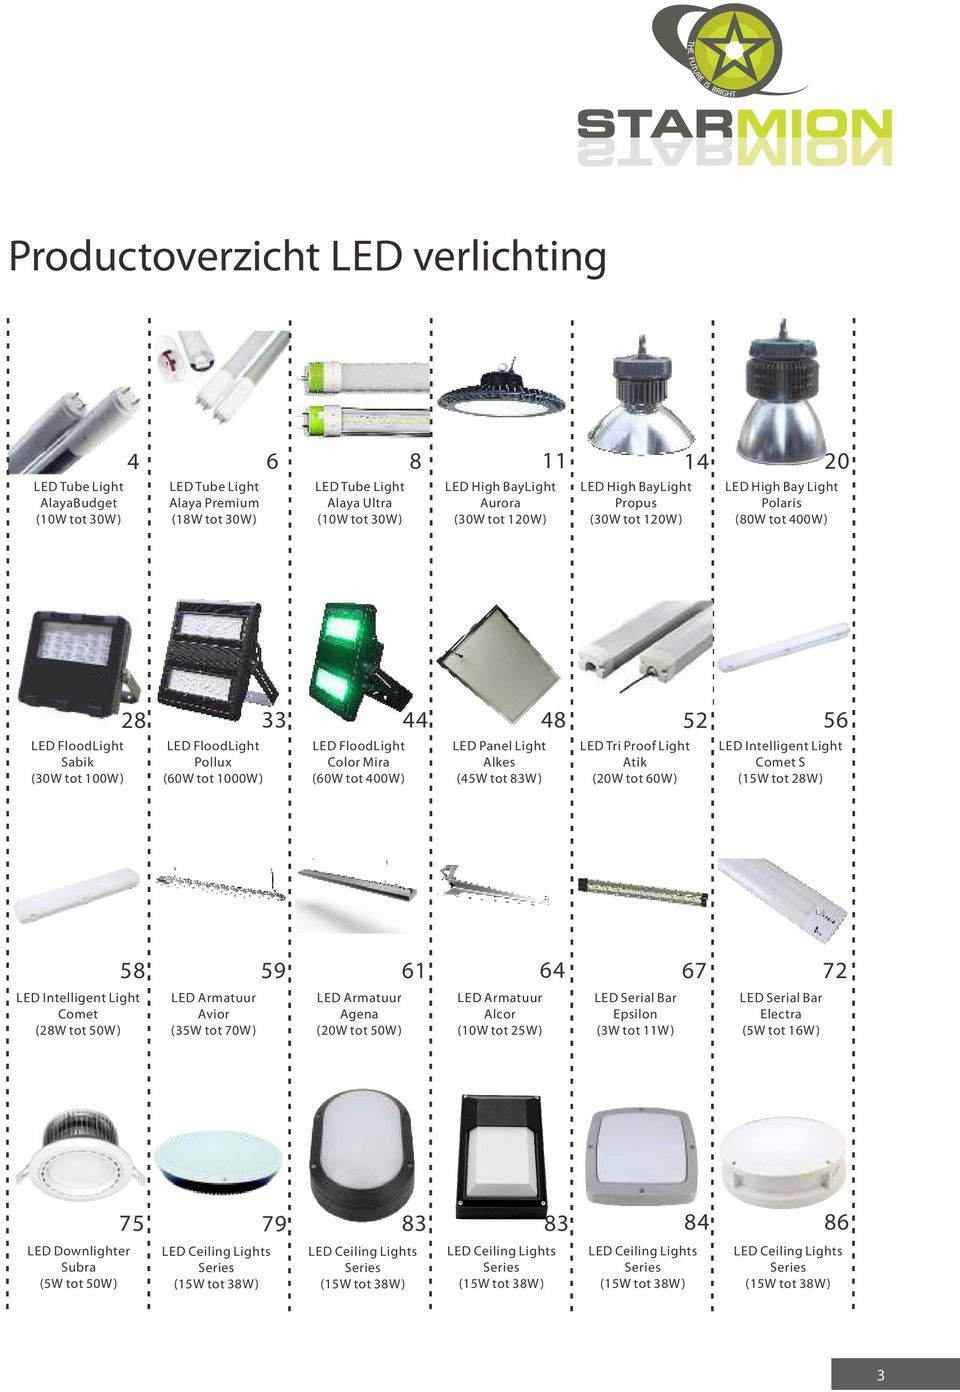 FloodLight Color Mira (60W tot 400W) LED Panel Light Alkes (45W tot 83W) LED Tri Proof Light Atik (20W tot 60W) LED Intelligent Light Comet S (15W tot 28W) LED Intelligent Light Comet (28W tot 50W)